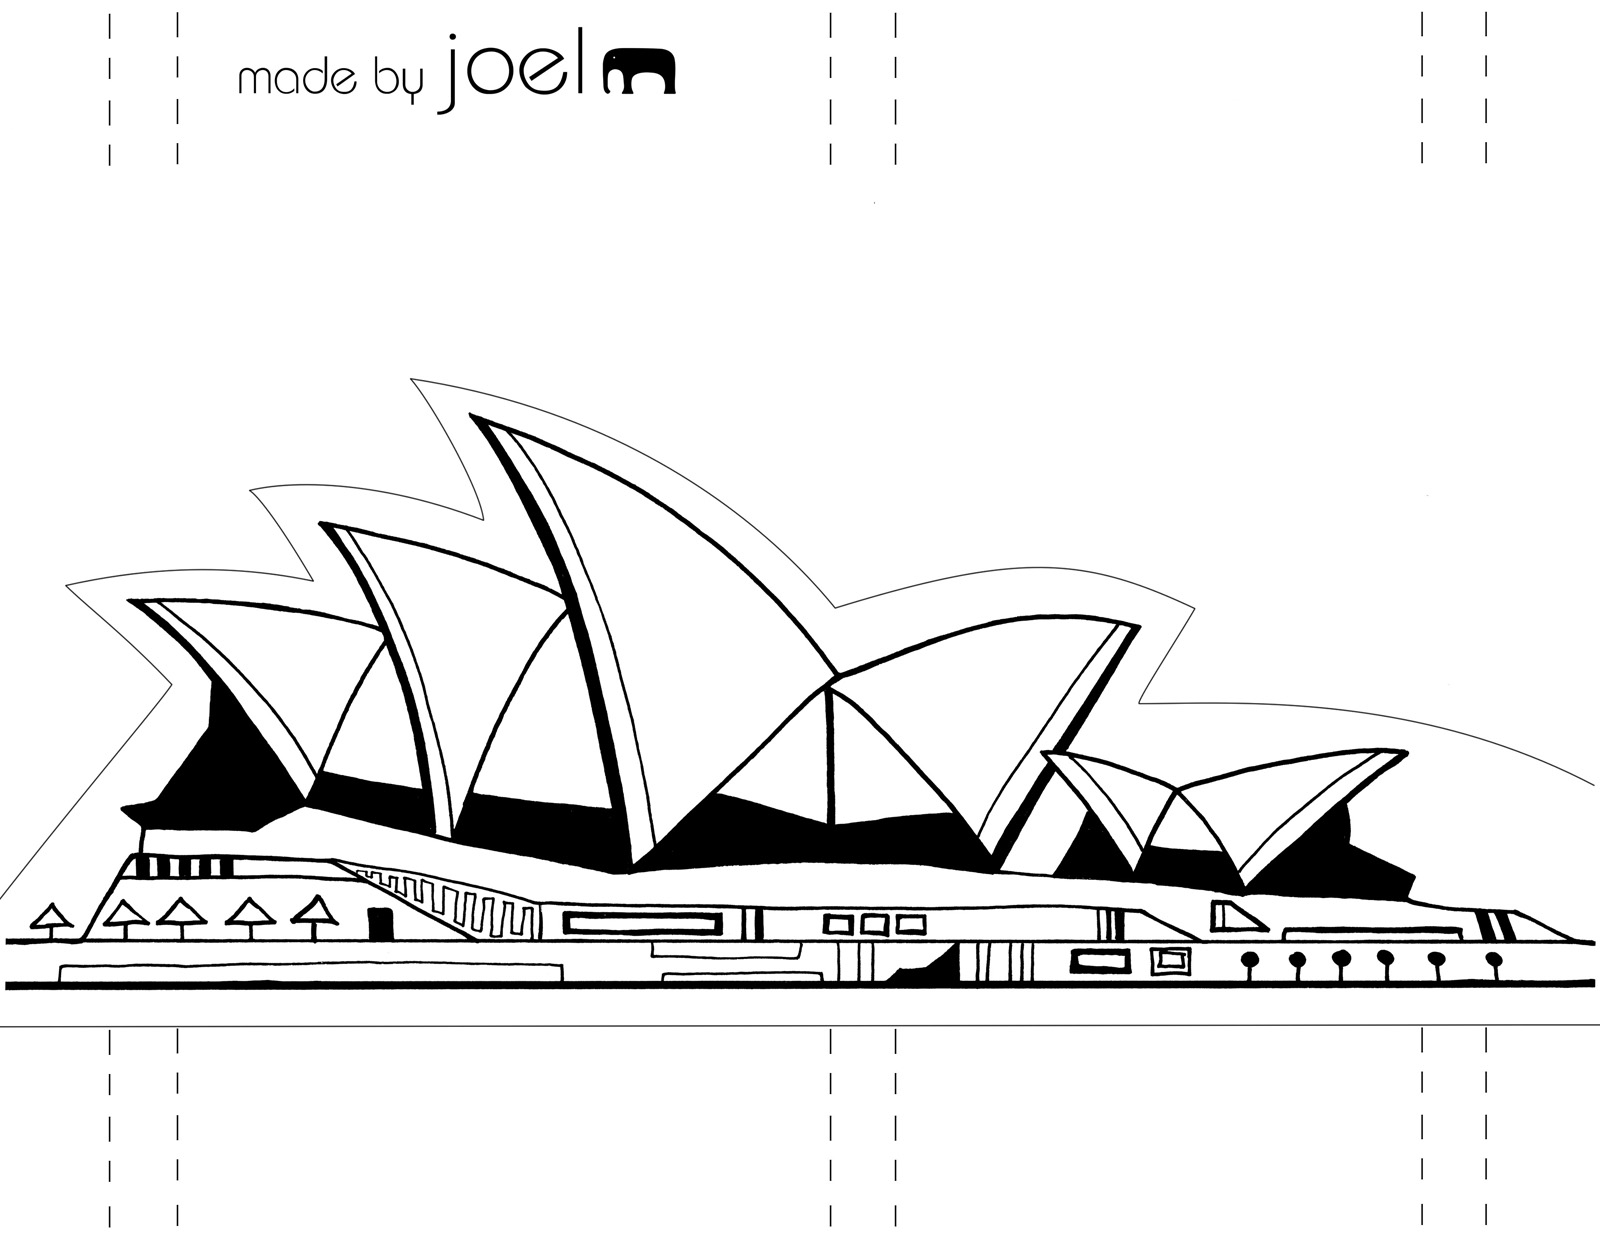 sydney opera house coloring page download sydney opera house coloring for free coloring house page sydney opera